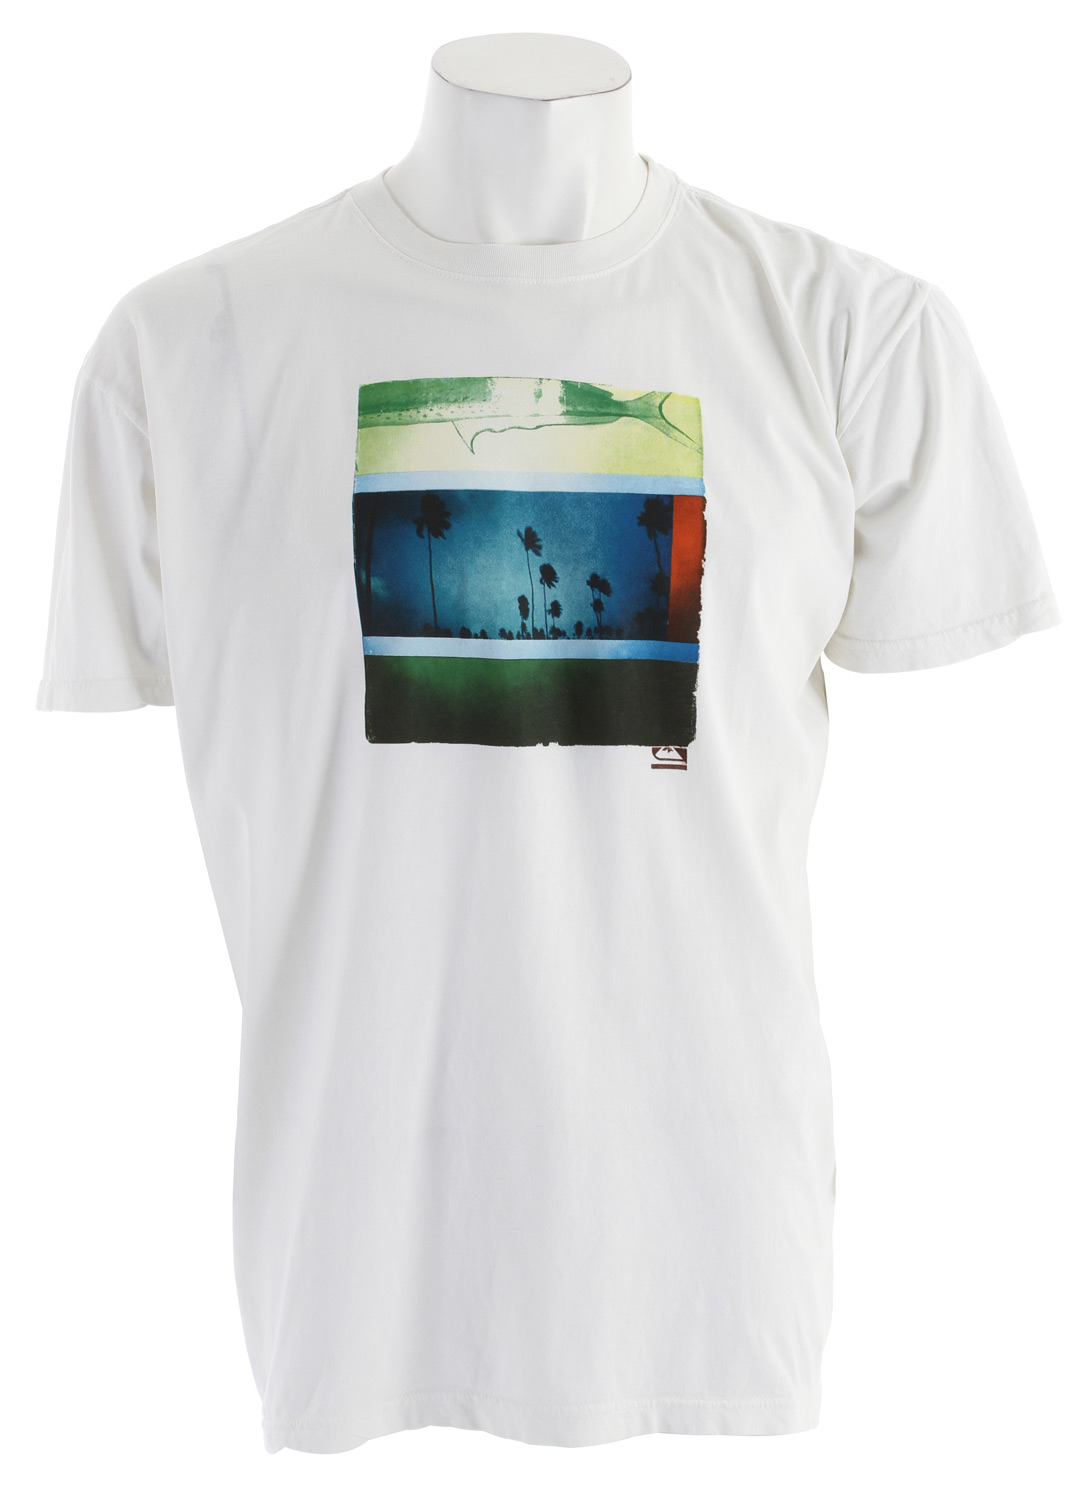 Surf 100% cotton, garment dyed with silicon/enzyme finish. Regular Fit - $26.95